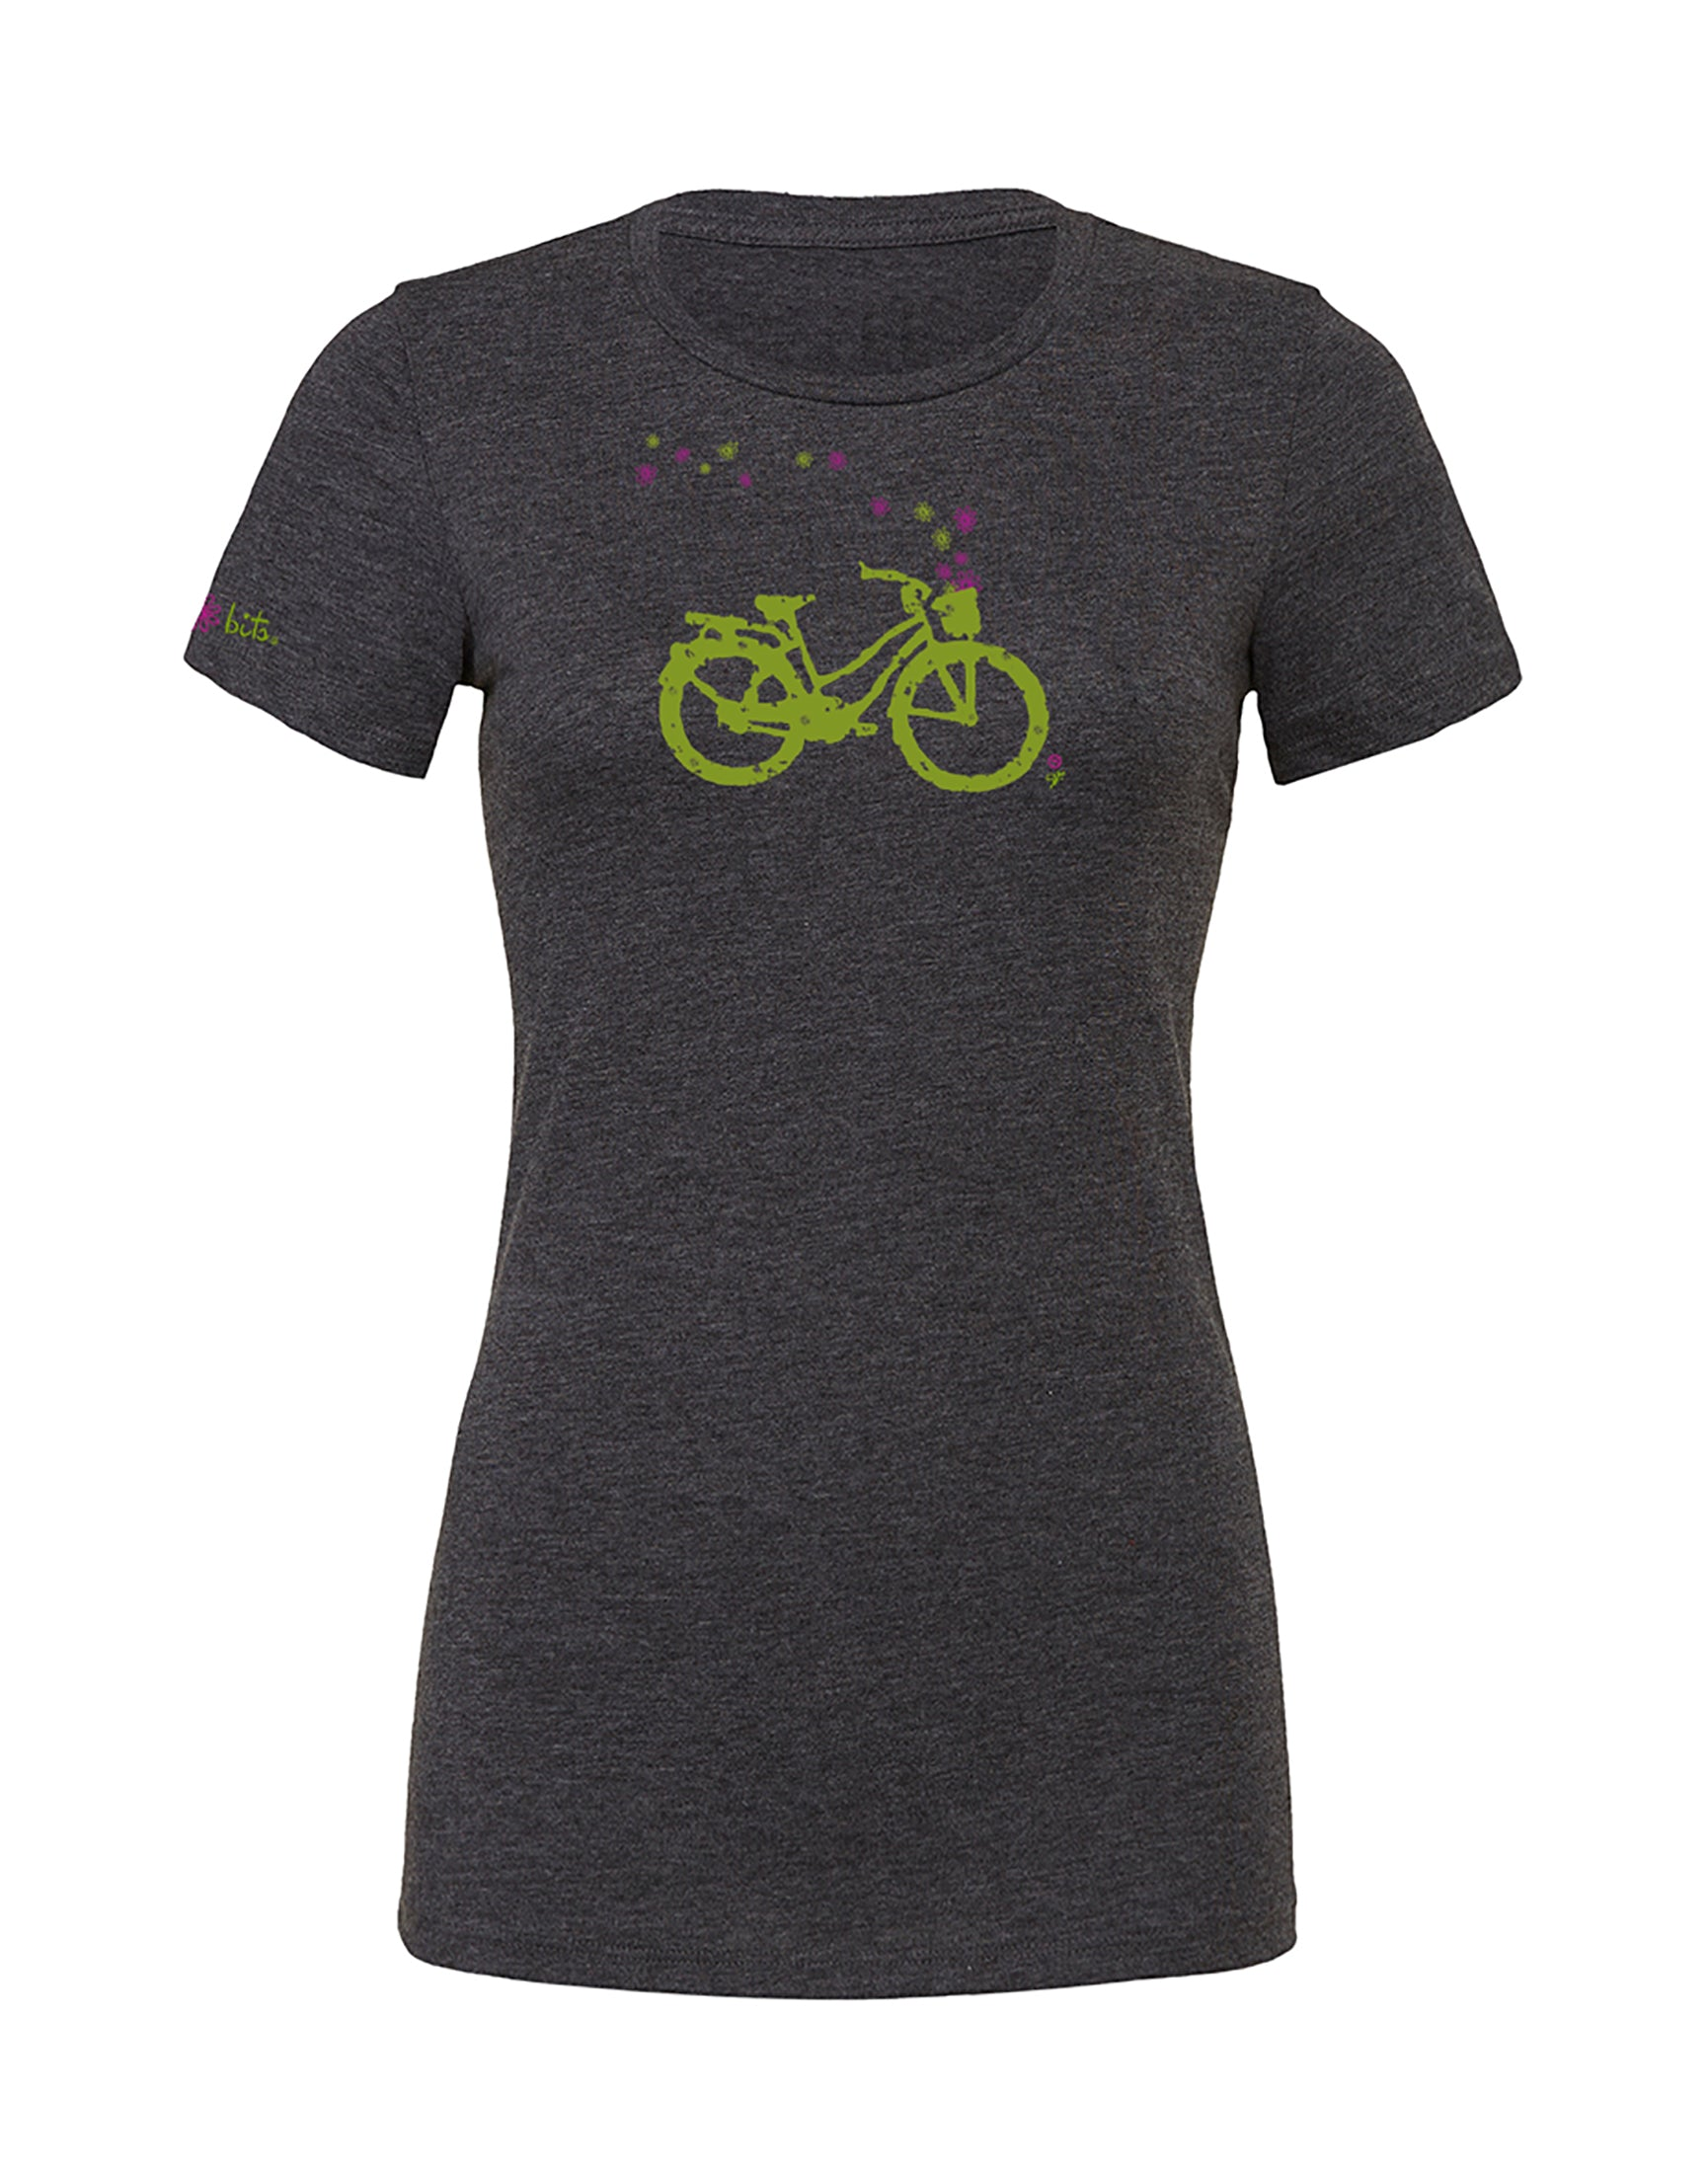 Women's Cruiser Tee - Dark Heather Grey by bici bits